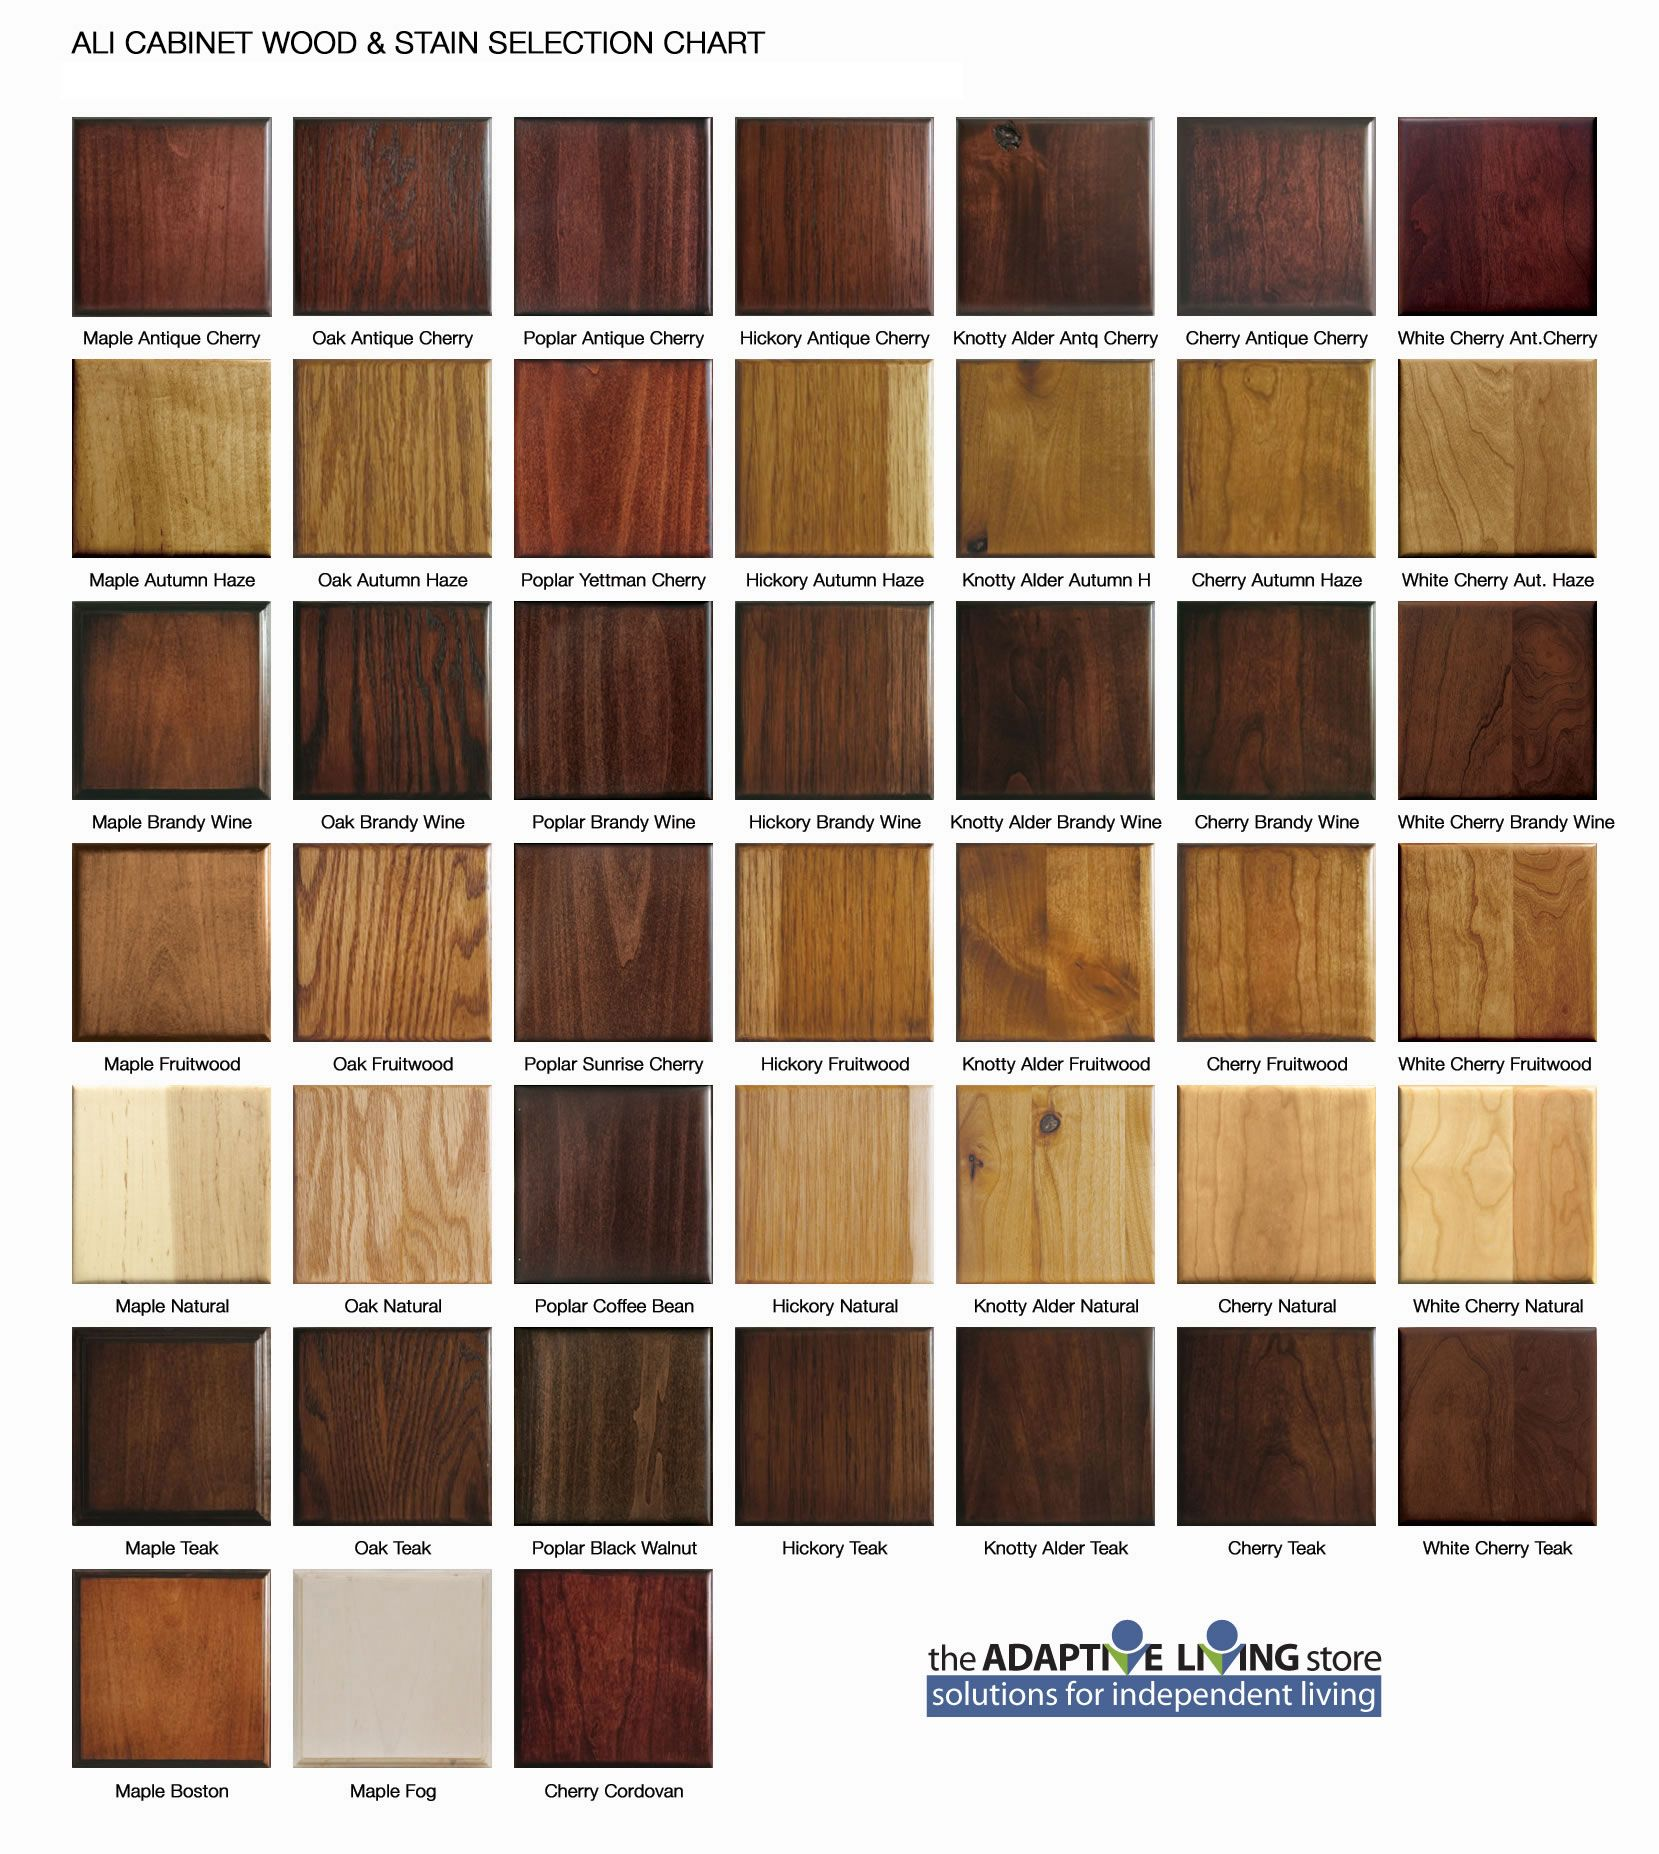 Awesome Impressive Wood Finish Colors #5 Cabinet Wood Stain Color Chart